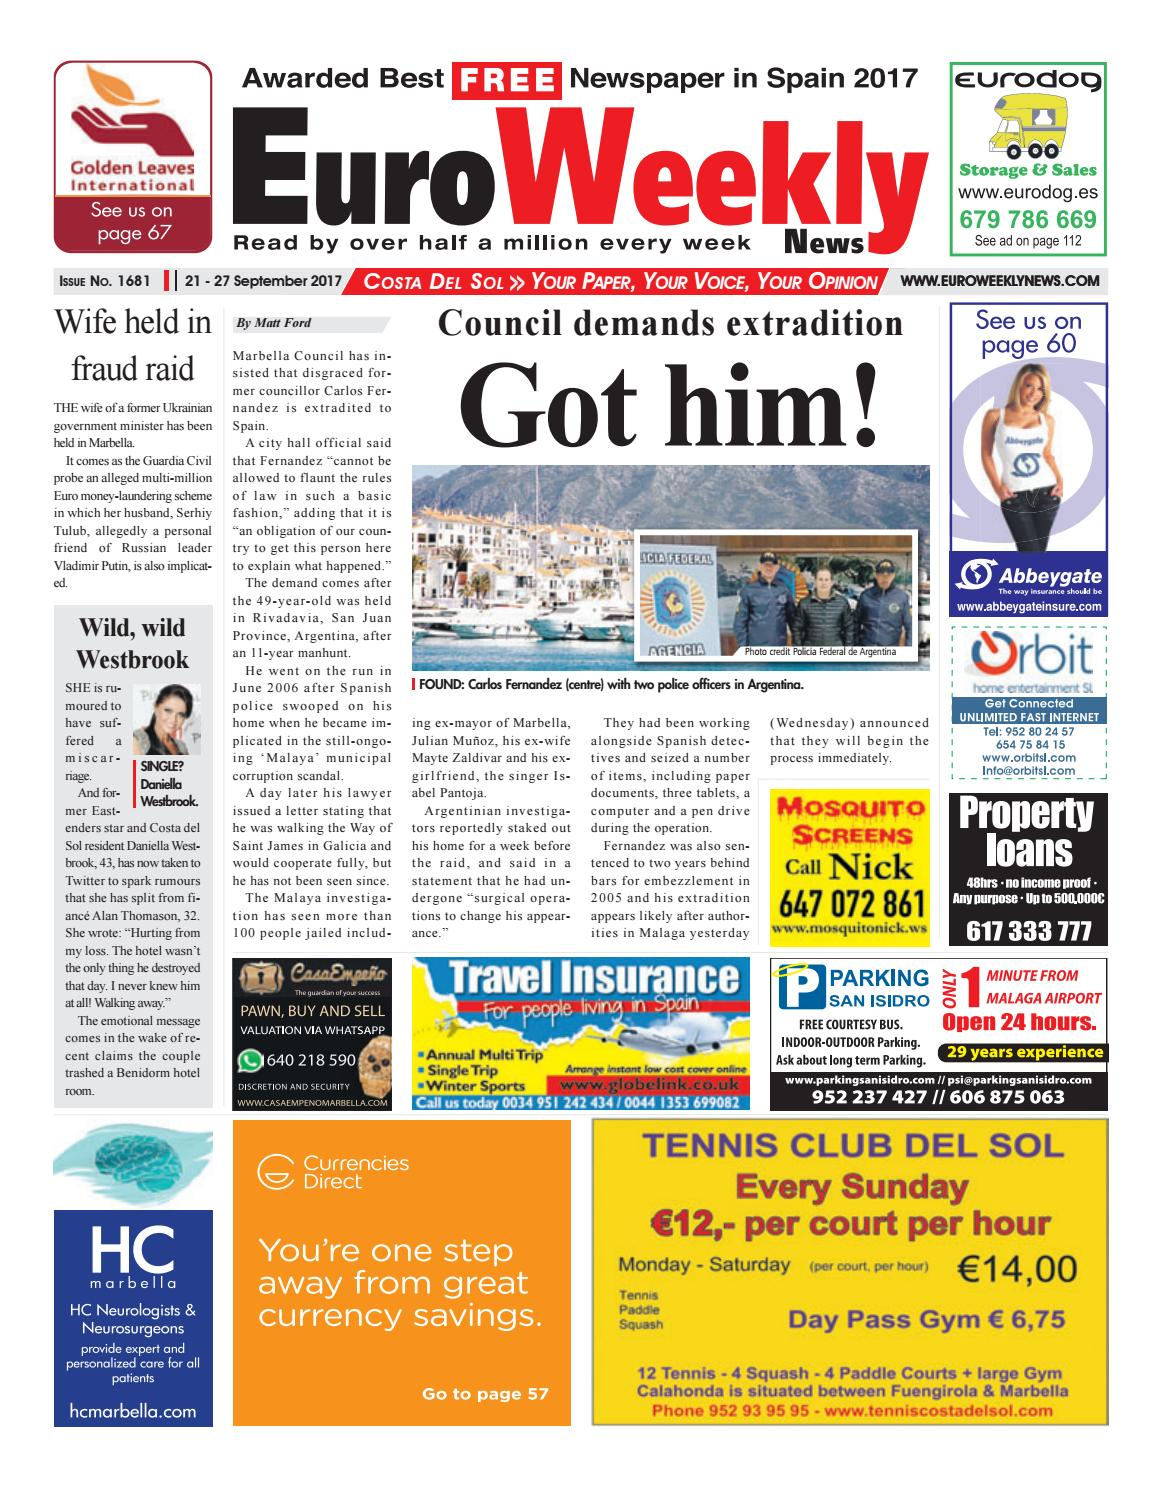 Euro weekly news costa del sol 21 27 september 2017 issue 1681 by euro weekly news costa del sol 21 27 september 2017 issue 1681 by euro weekly news media sa issuu fandeluxe Images